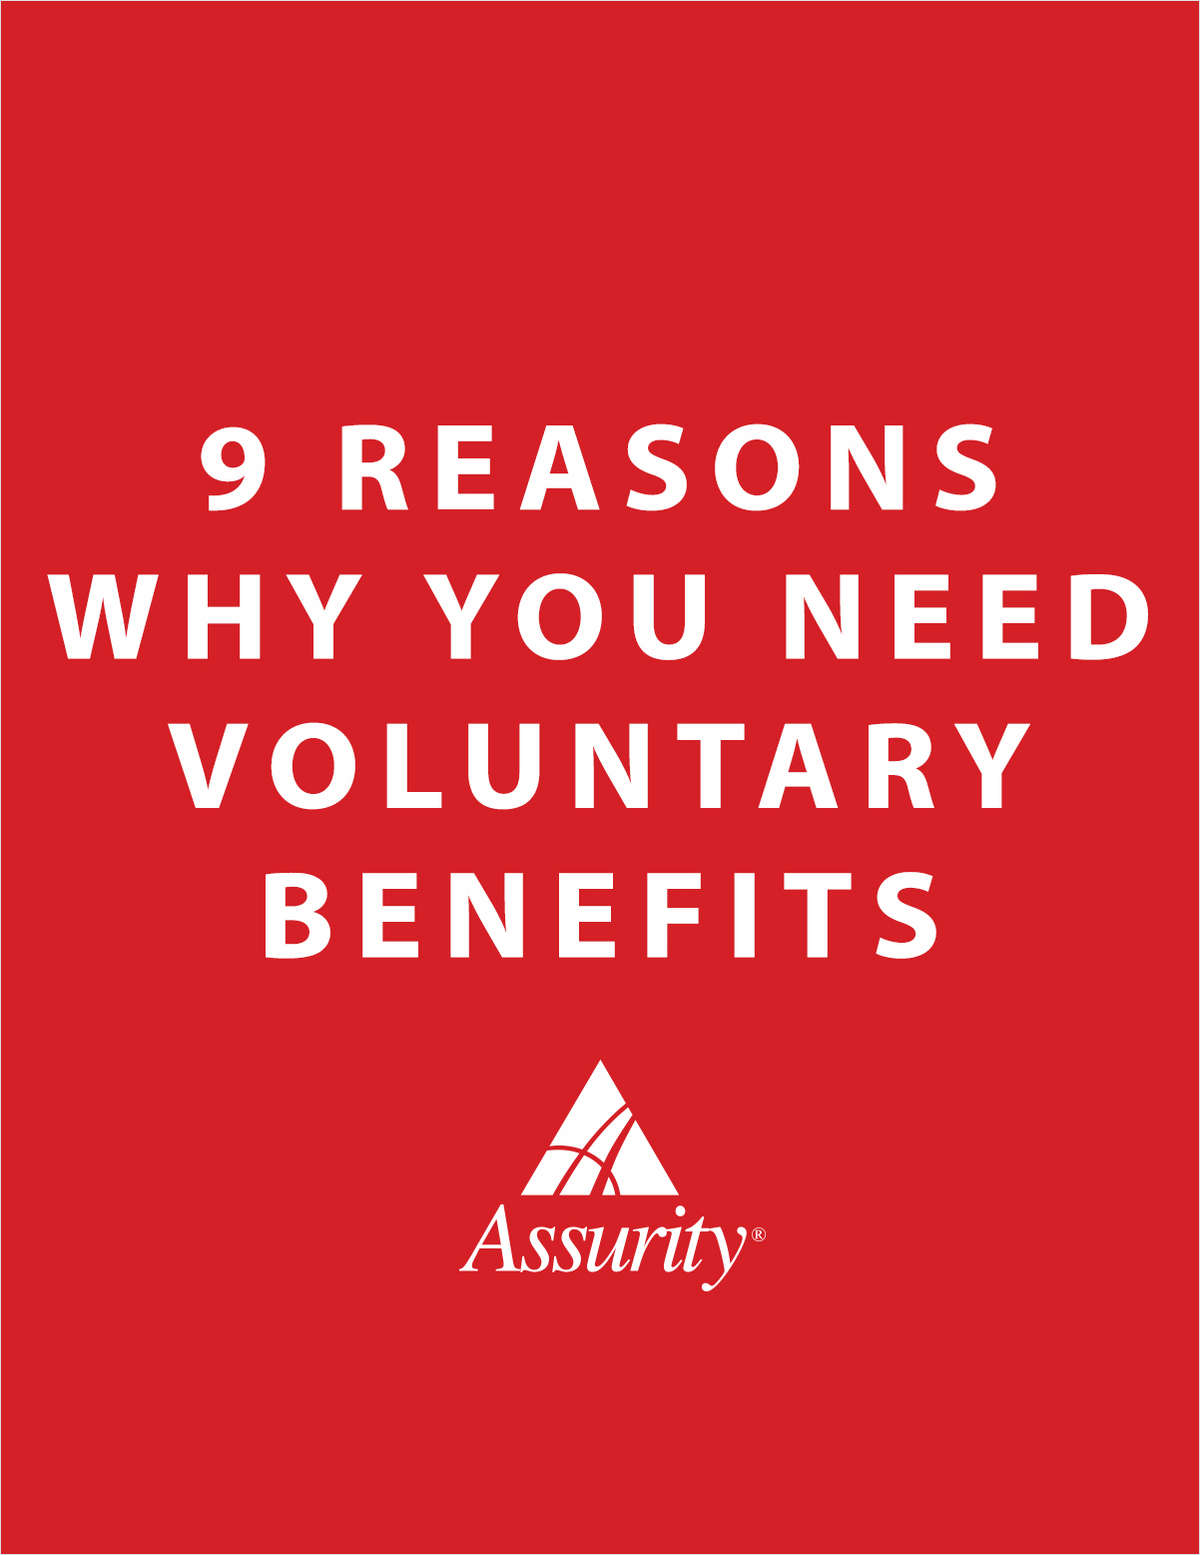 9 Reasons Why Your Clients Should Offer Voluntary Benefits